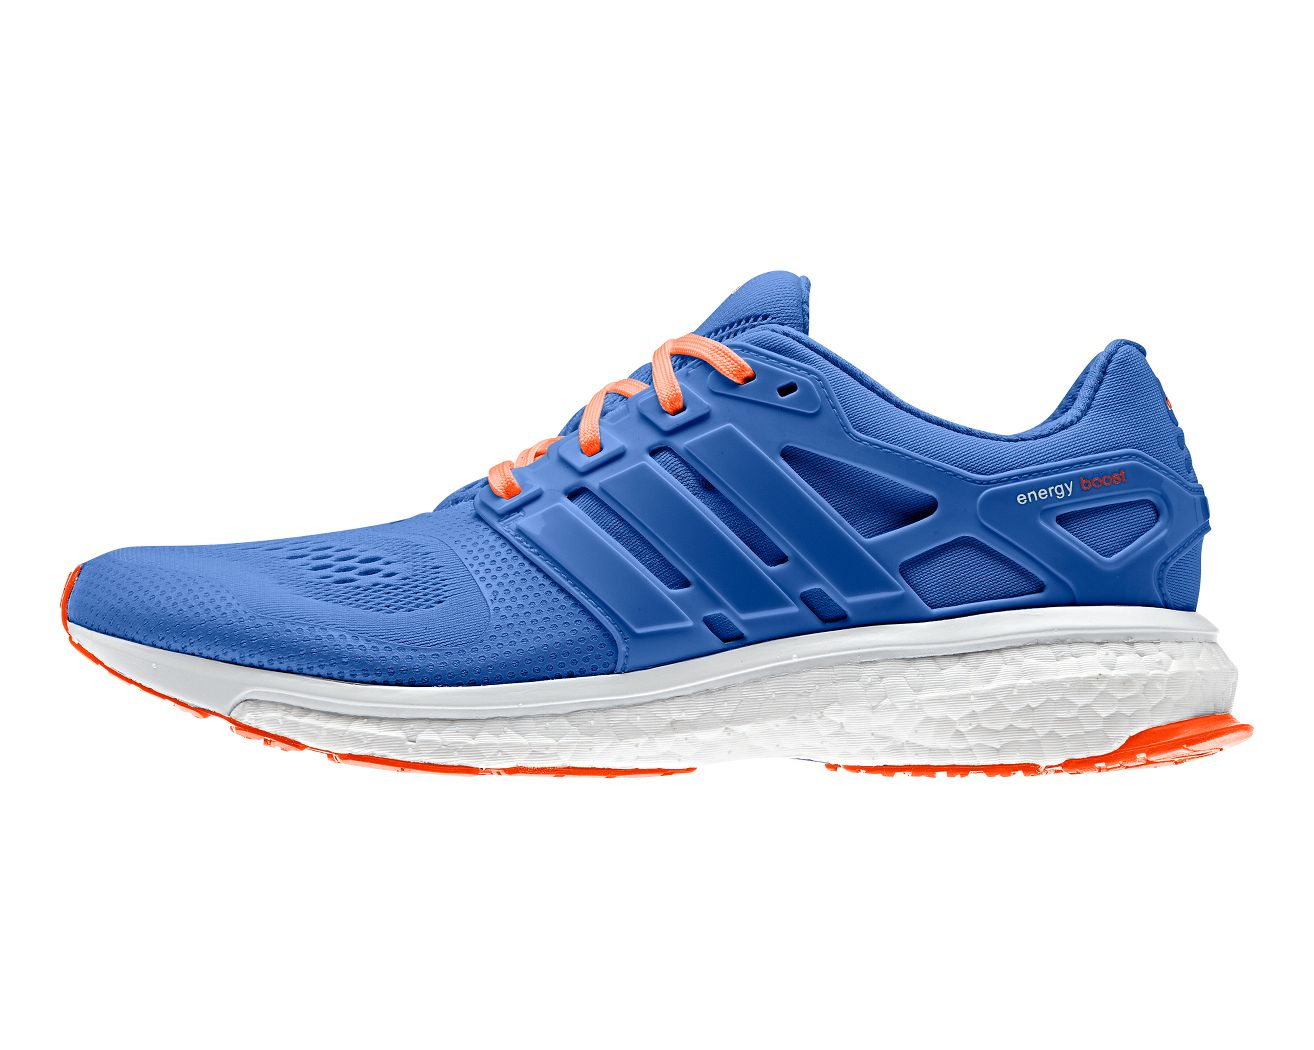 adidas energy boost 2 esm sale